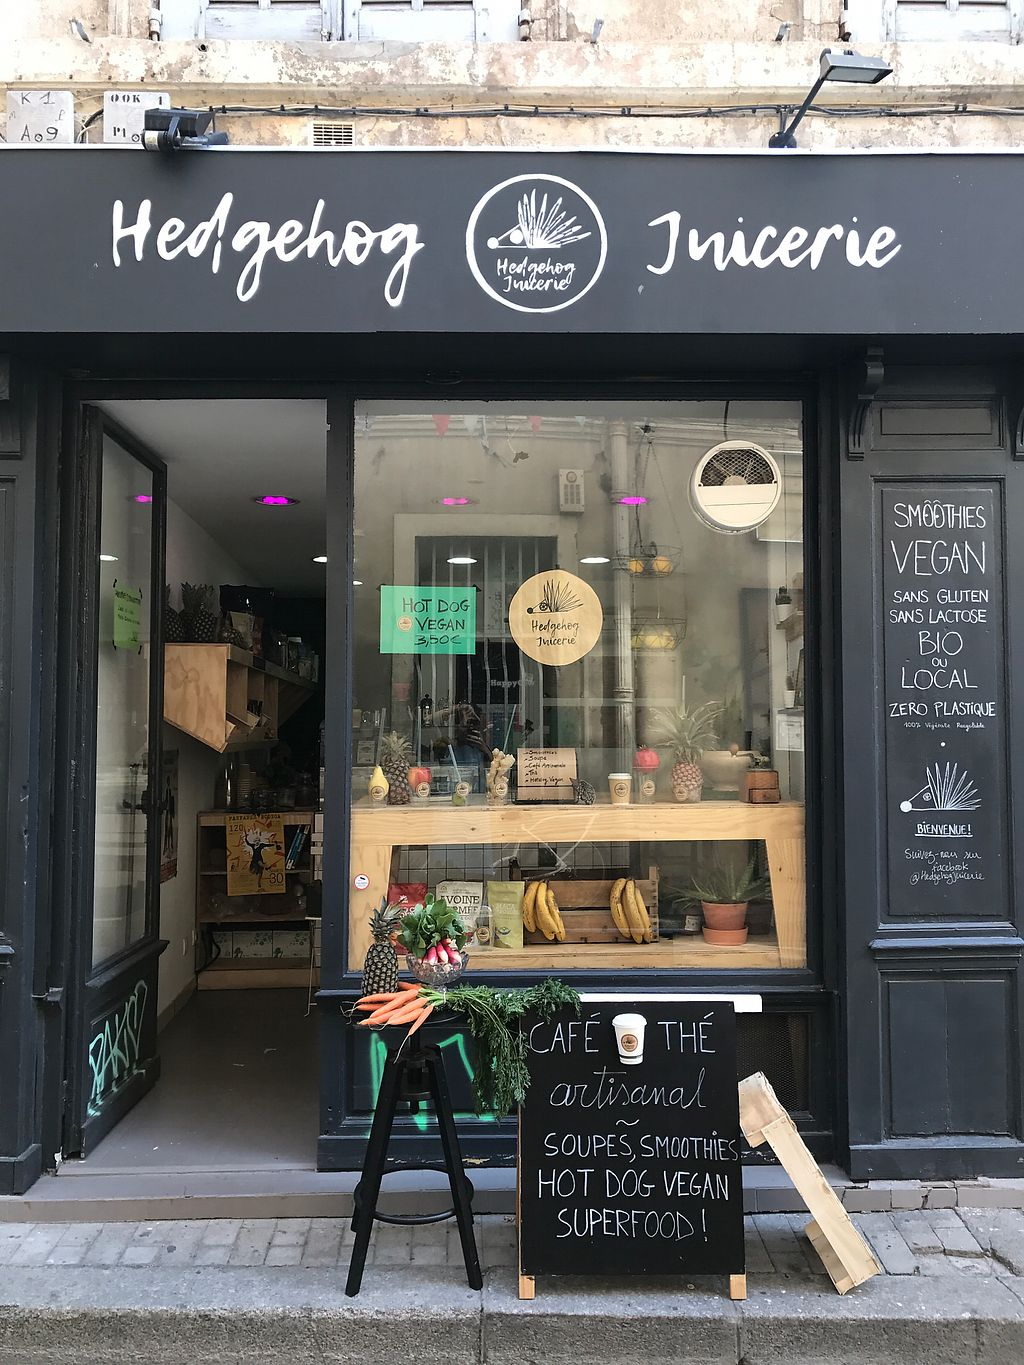 "Photo of Hedgehog Juicerie  by <a href=""/members/profile/HedgehogJuicerie"">HedgehogJuicerie</a> <br/>Hedgehog Juicerie  <br/> October 2, 2017  - <a href='/contact/abuse/image/95969/311072'>Report</a>"